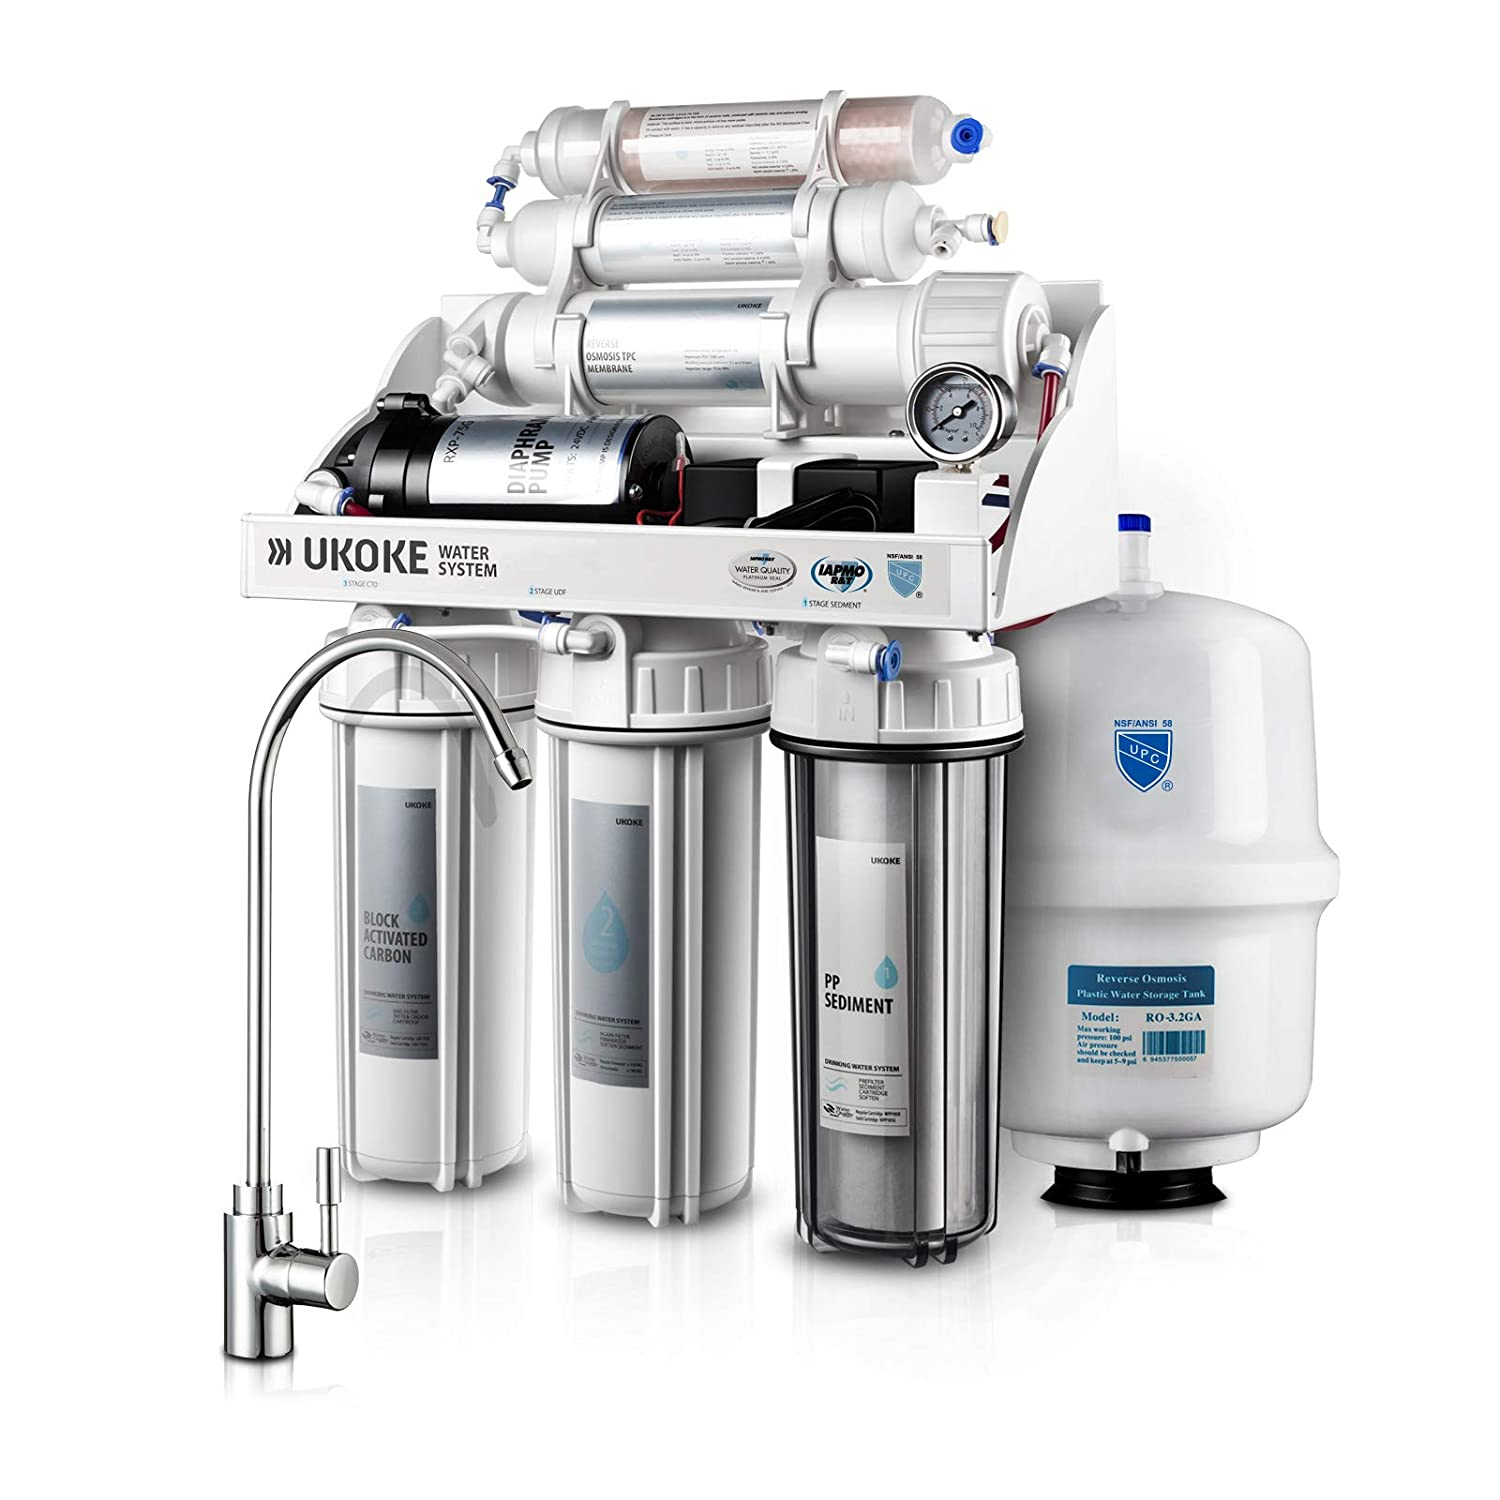 Ukoke RO75GP 6 Stages Reverse Osmosis Water Filtration System, Under Sink pH+ Alkaline Remineralizing RO filter & Softener, NSF/ANSI 58 & IAPMO Platinum Seal Certified, 75 GPD, White with Pump